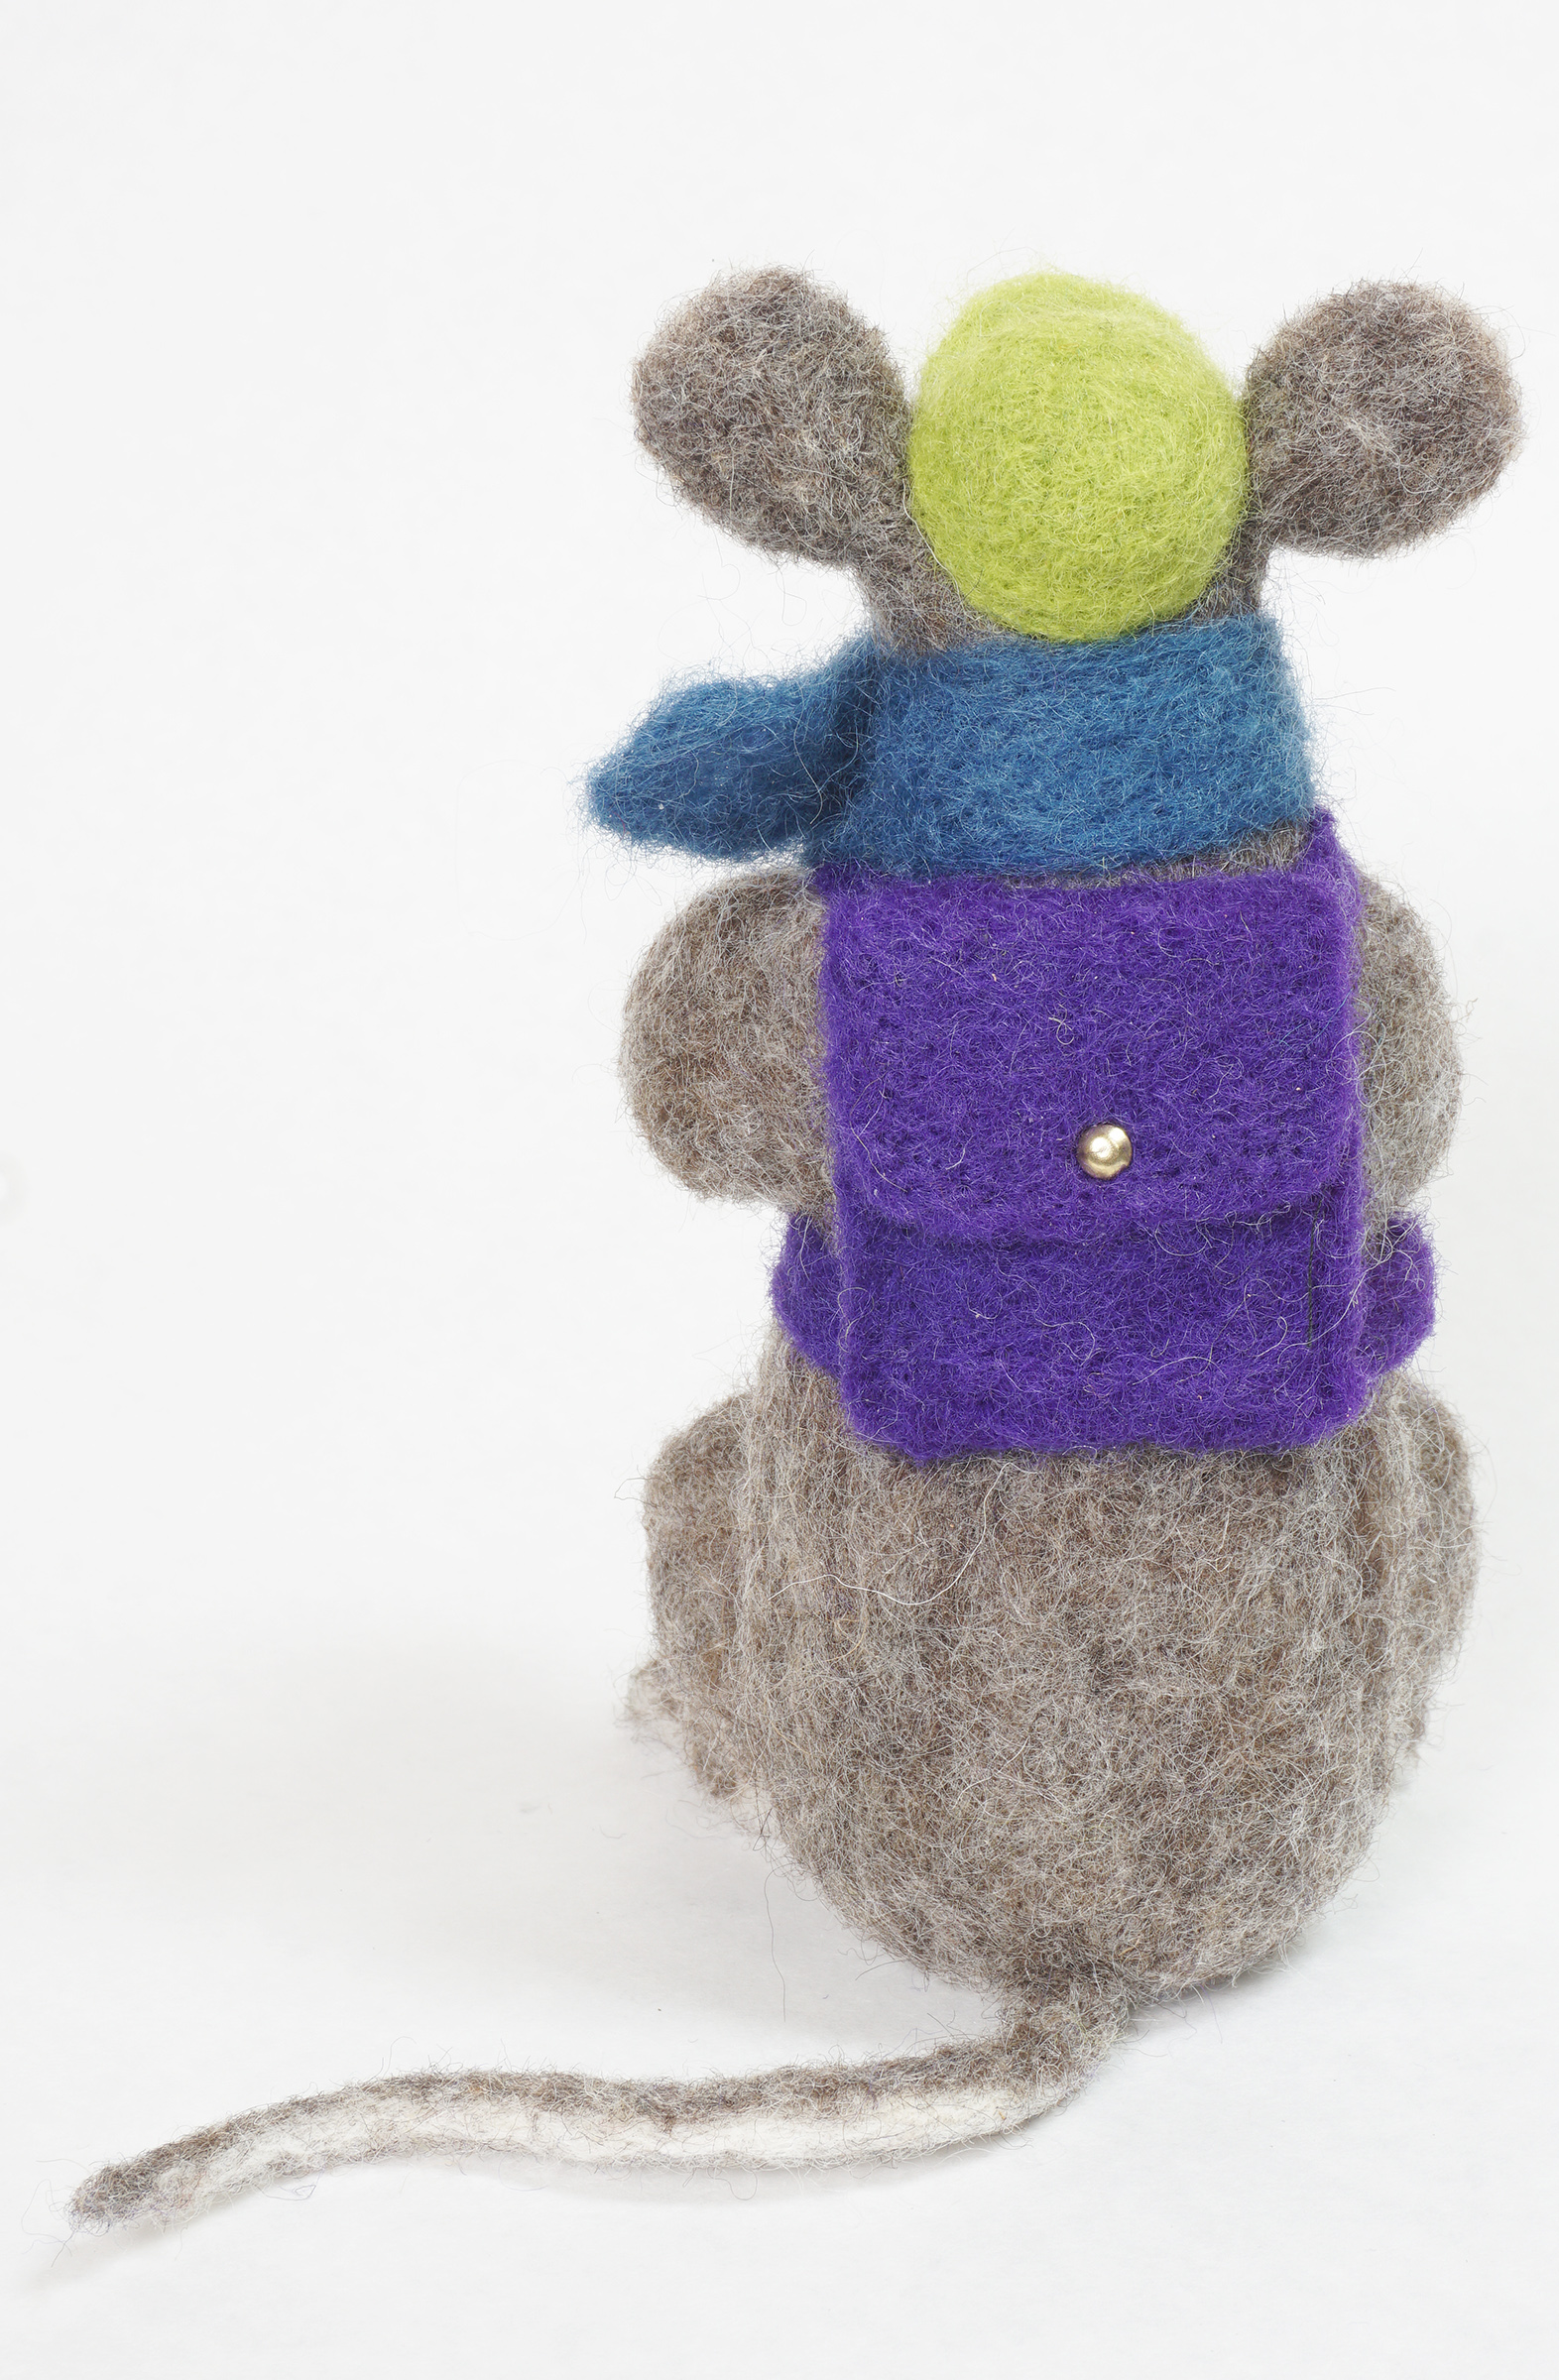 Adventure Begins anthropomorphic needle felted mouse art doll - back view